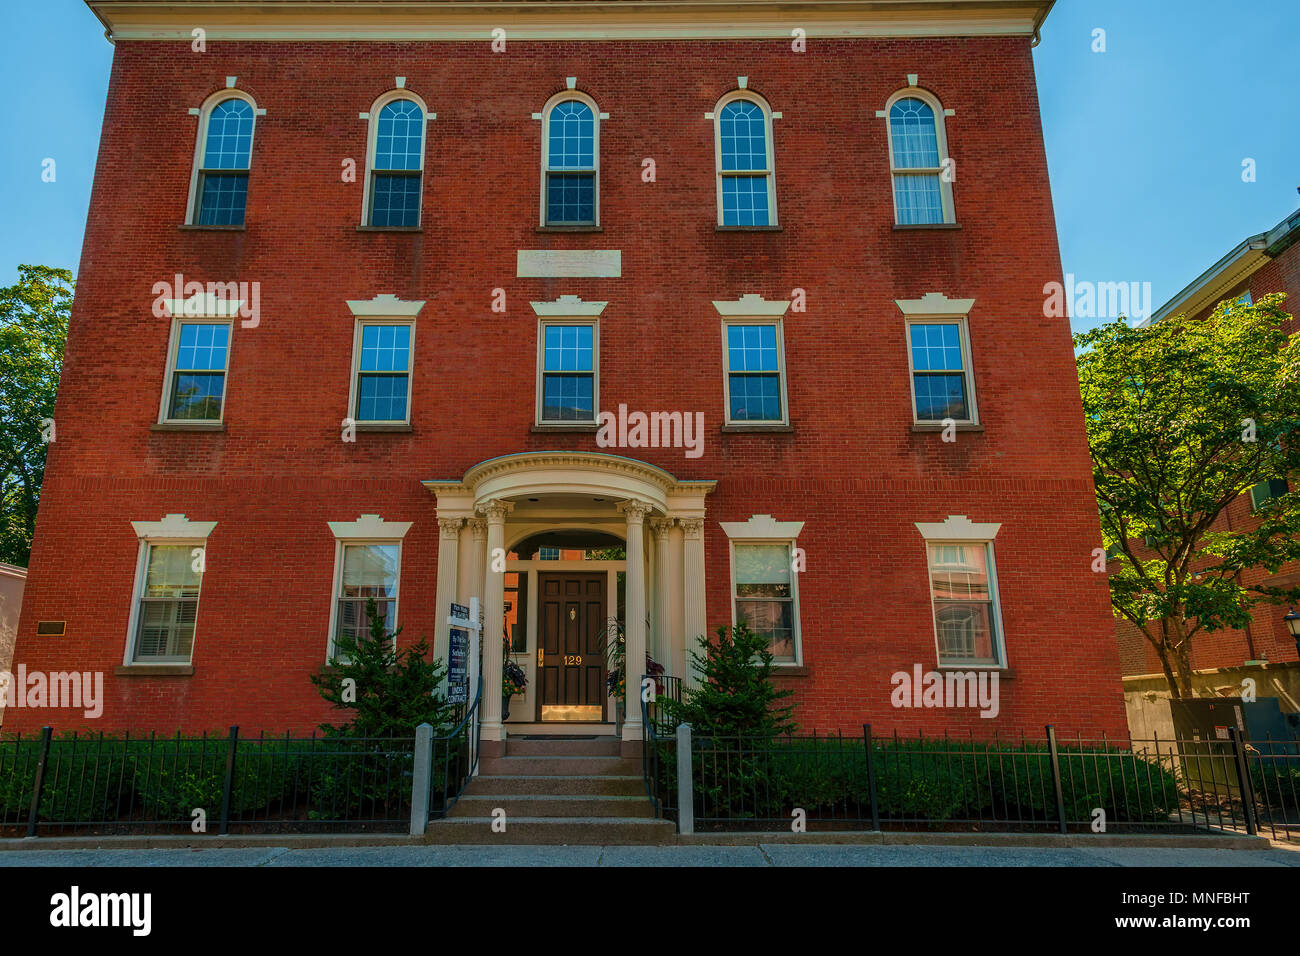 Salem, Massachusetts,USA - September 14, 2016: The Gideon Tucker House, also known as the Tucker-Rice house was built in 1808-1809 and was significant - Stock Image